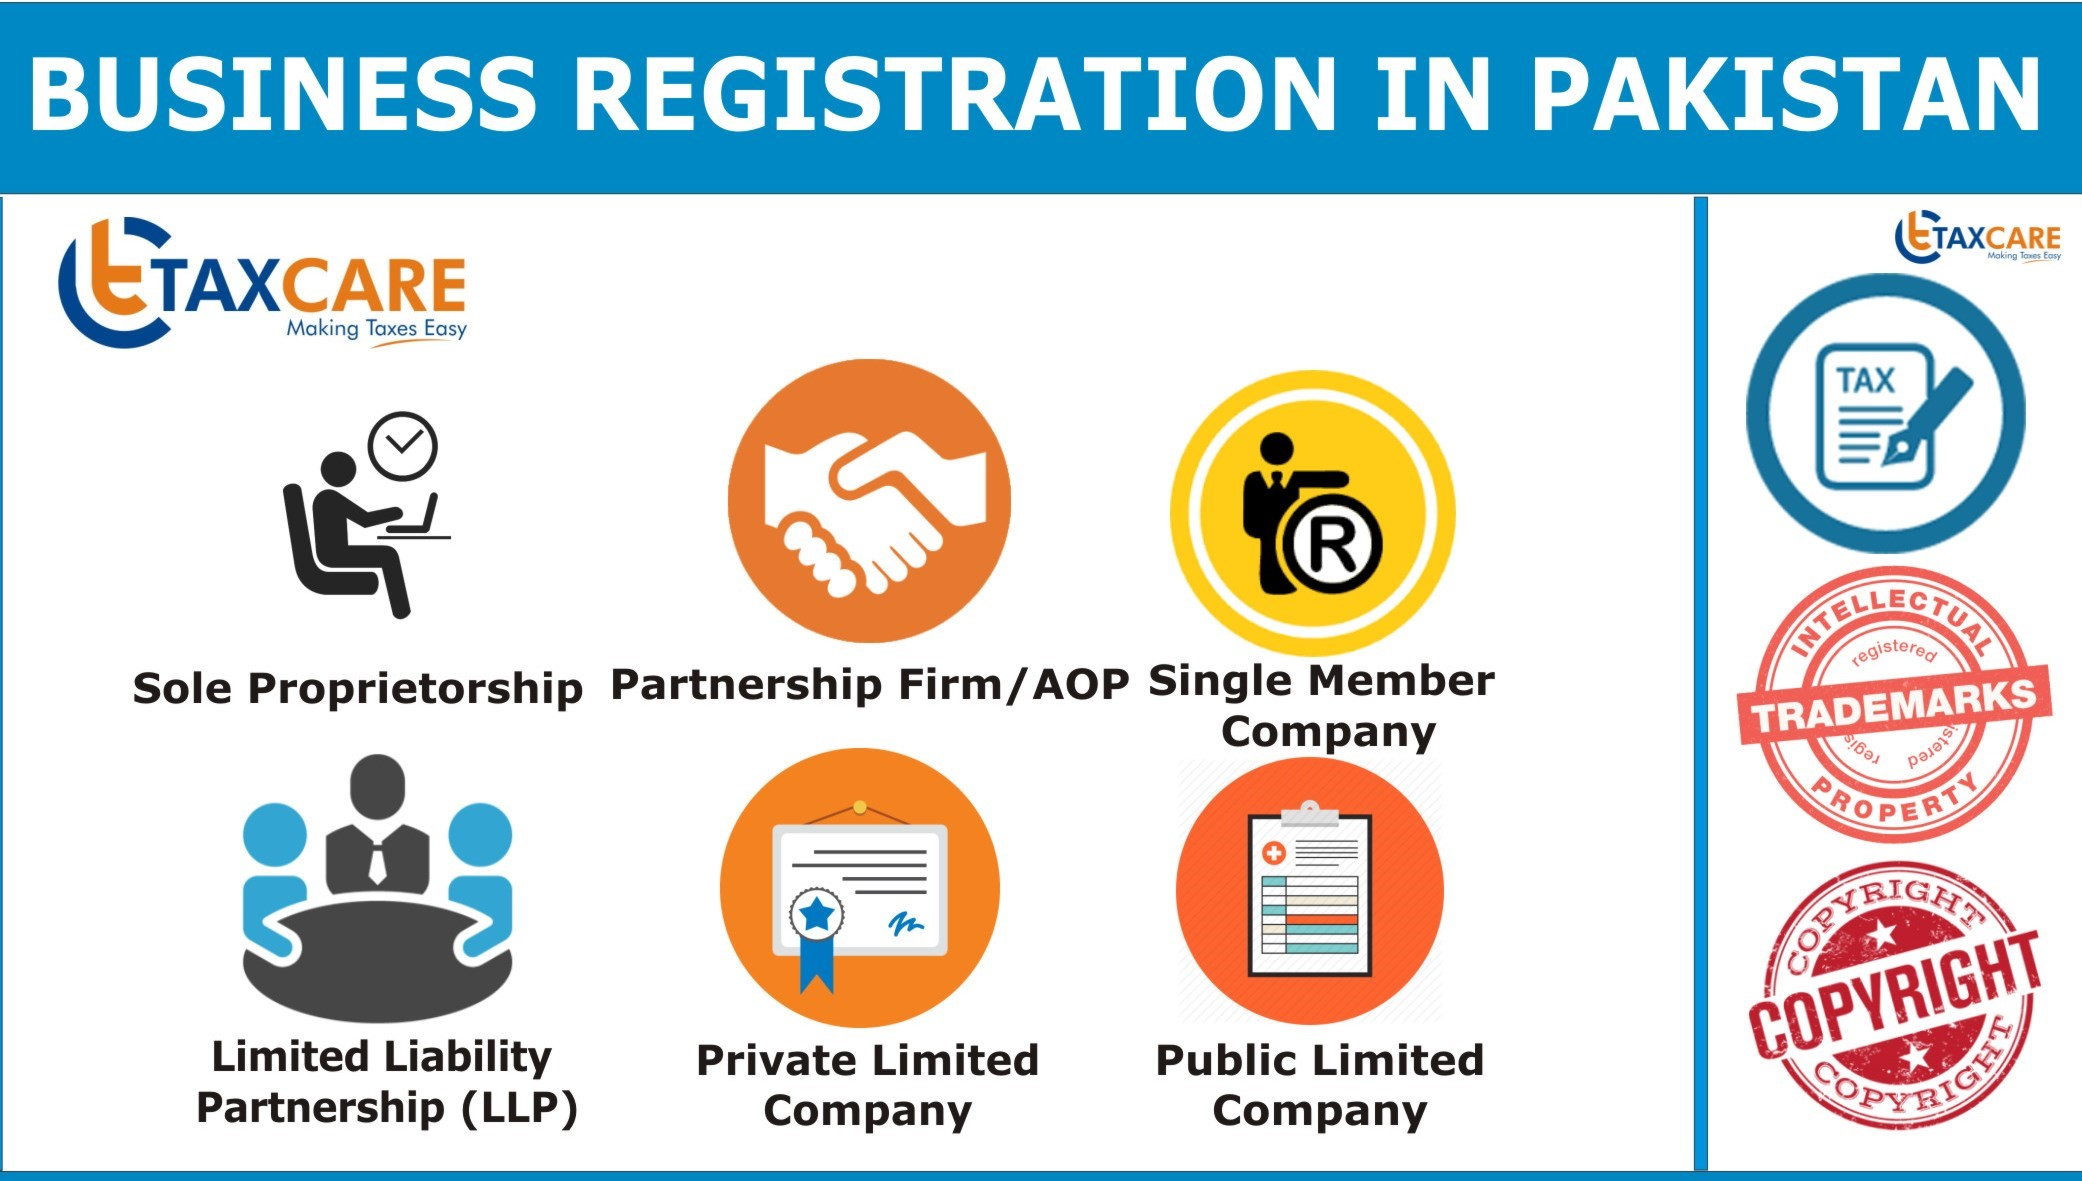 Types of Business Registration in Pakistan